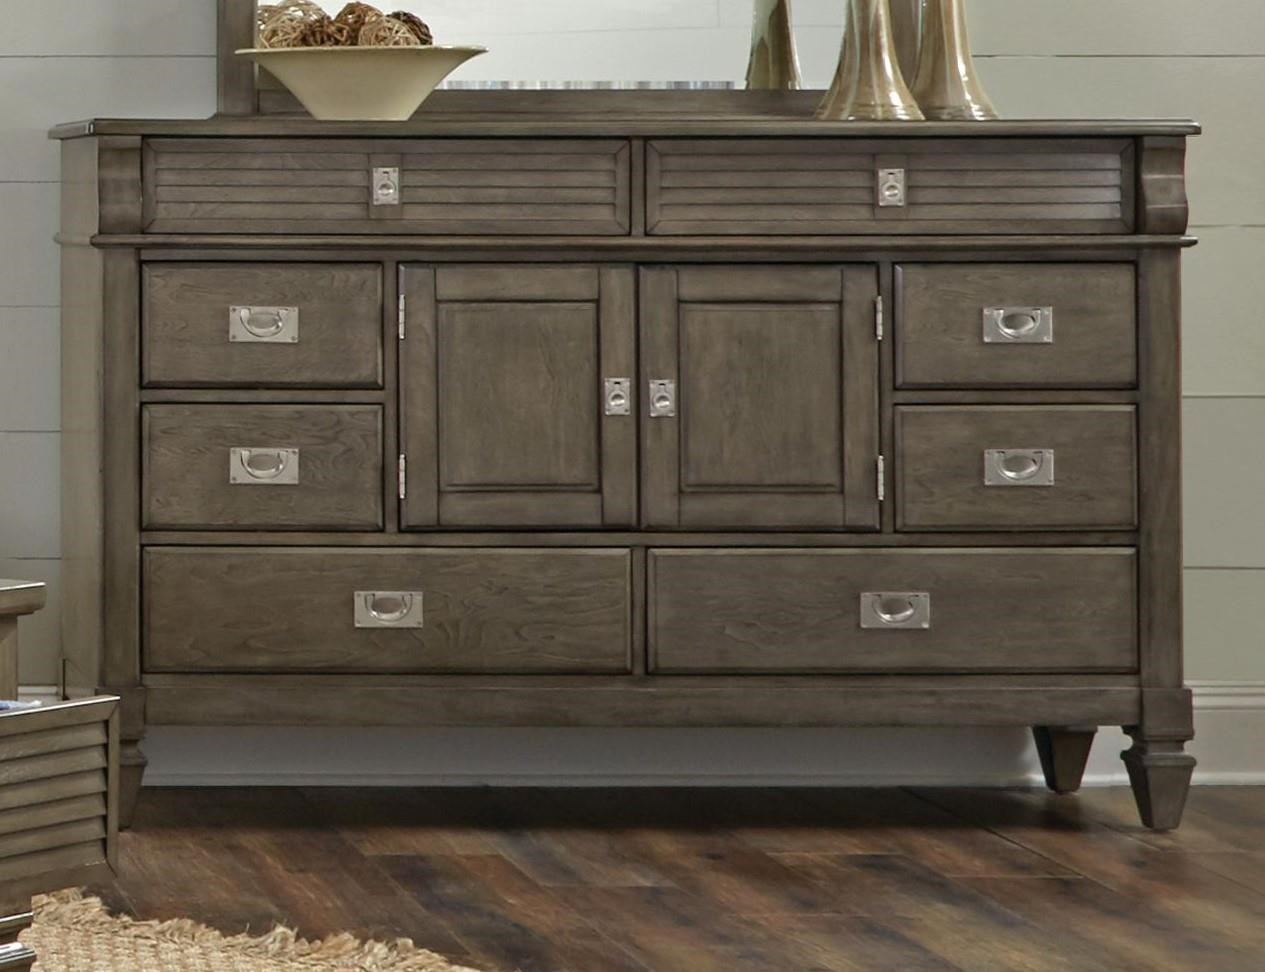 Lifestyle 6204G Grey Washed Dresser - Item Number: 6204G-Dresser